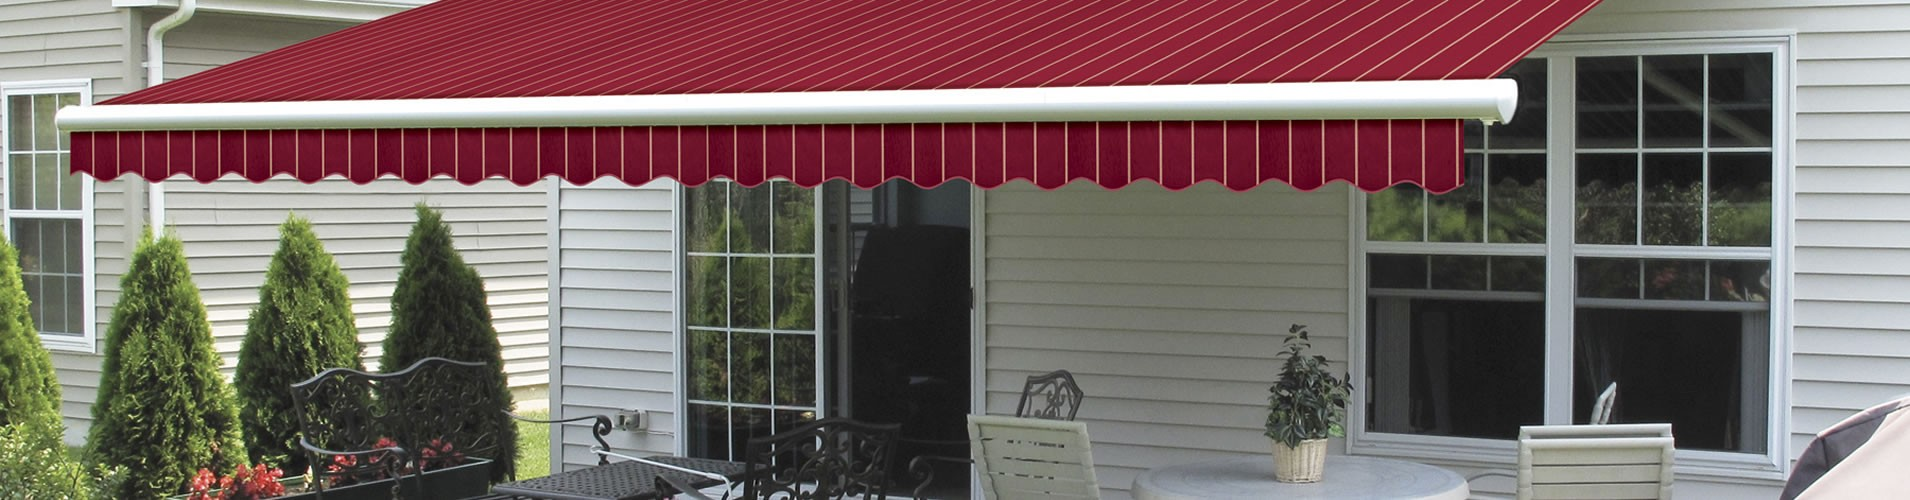 Houston Texas Retractable Awnings